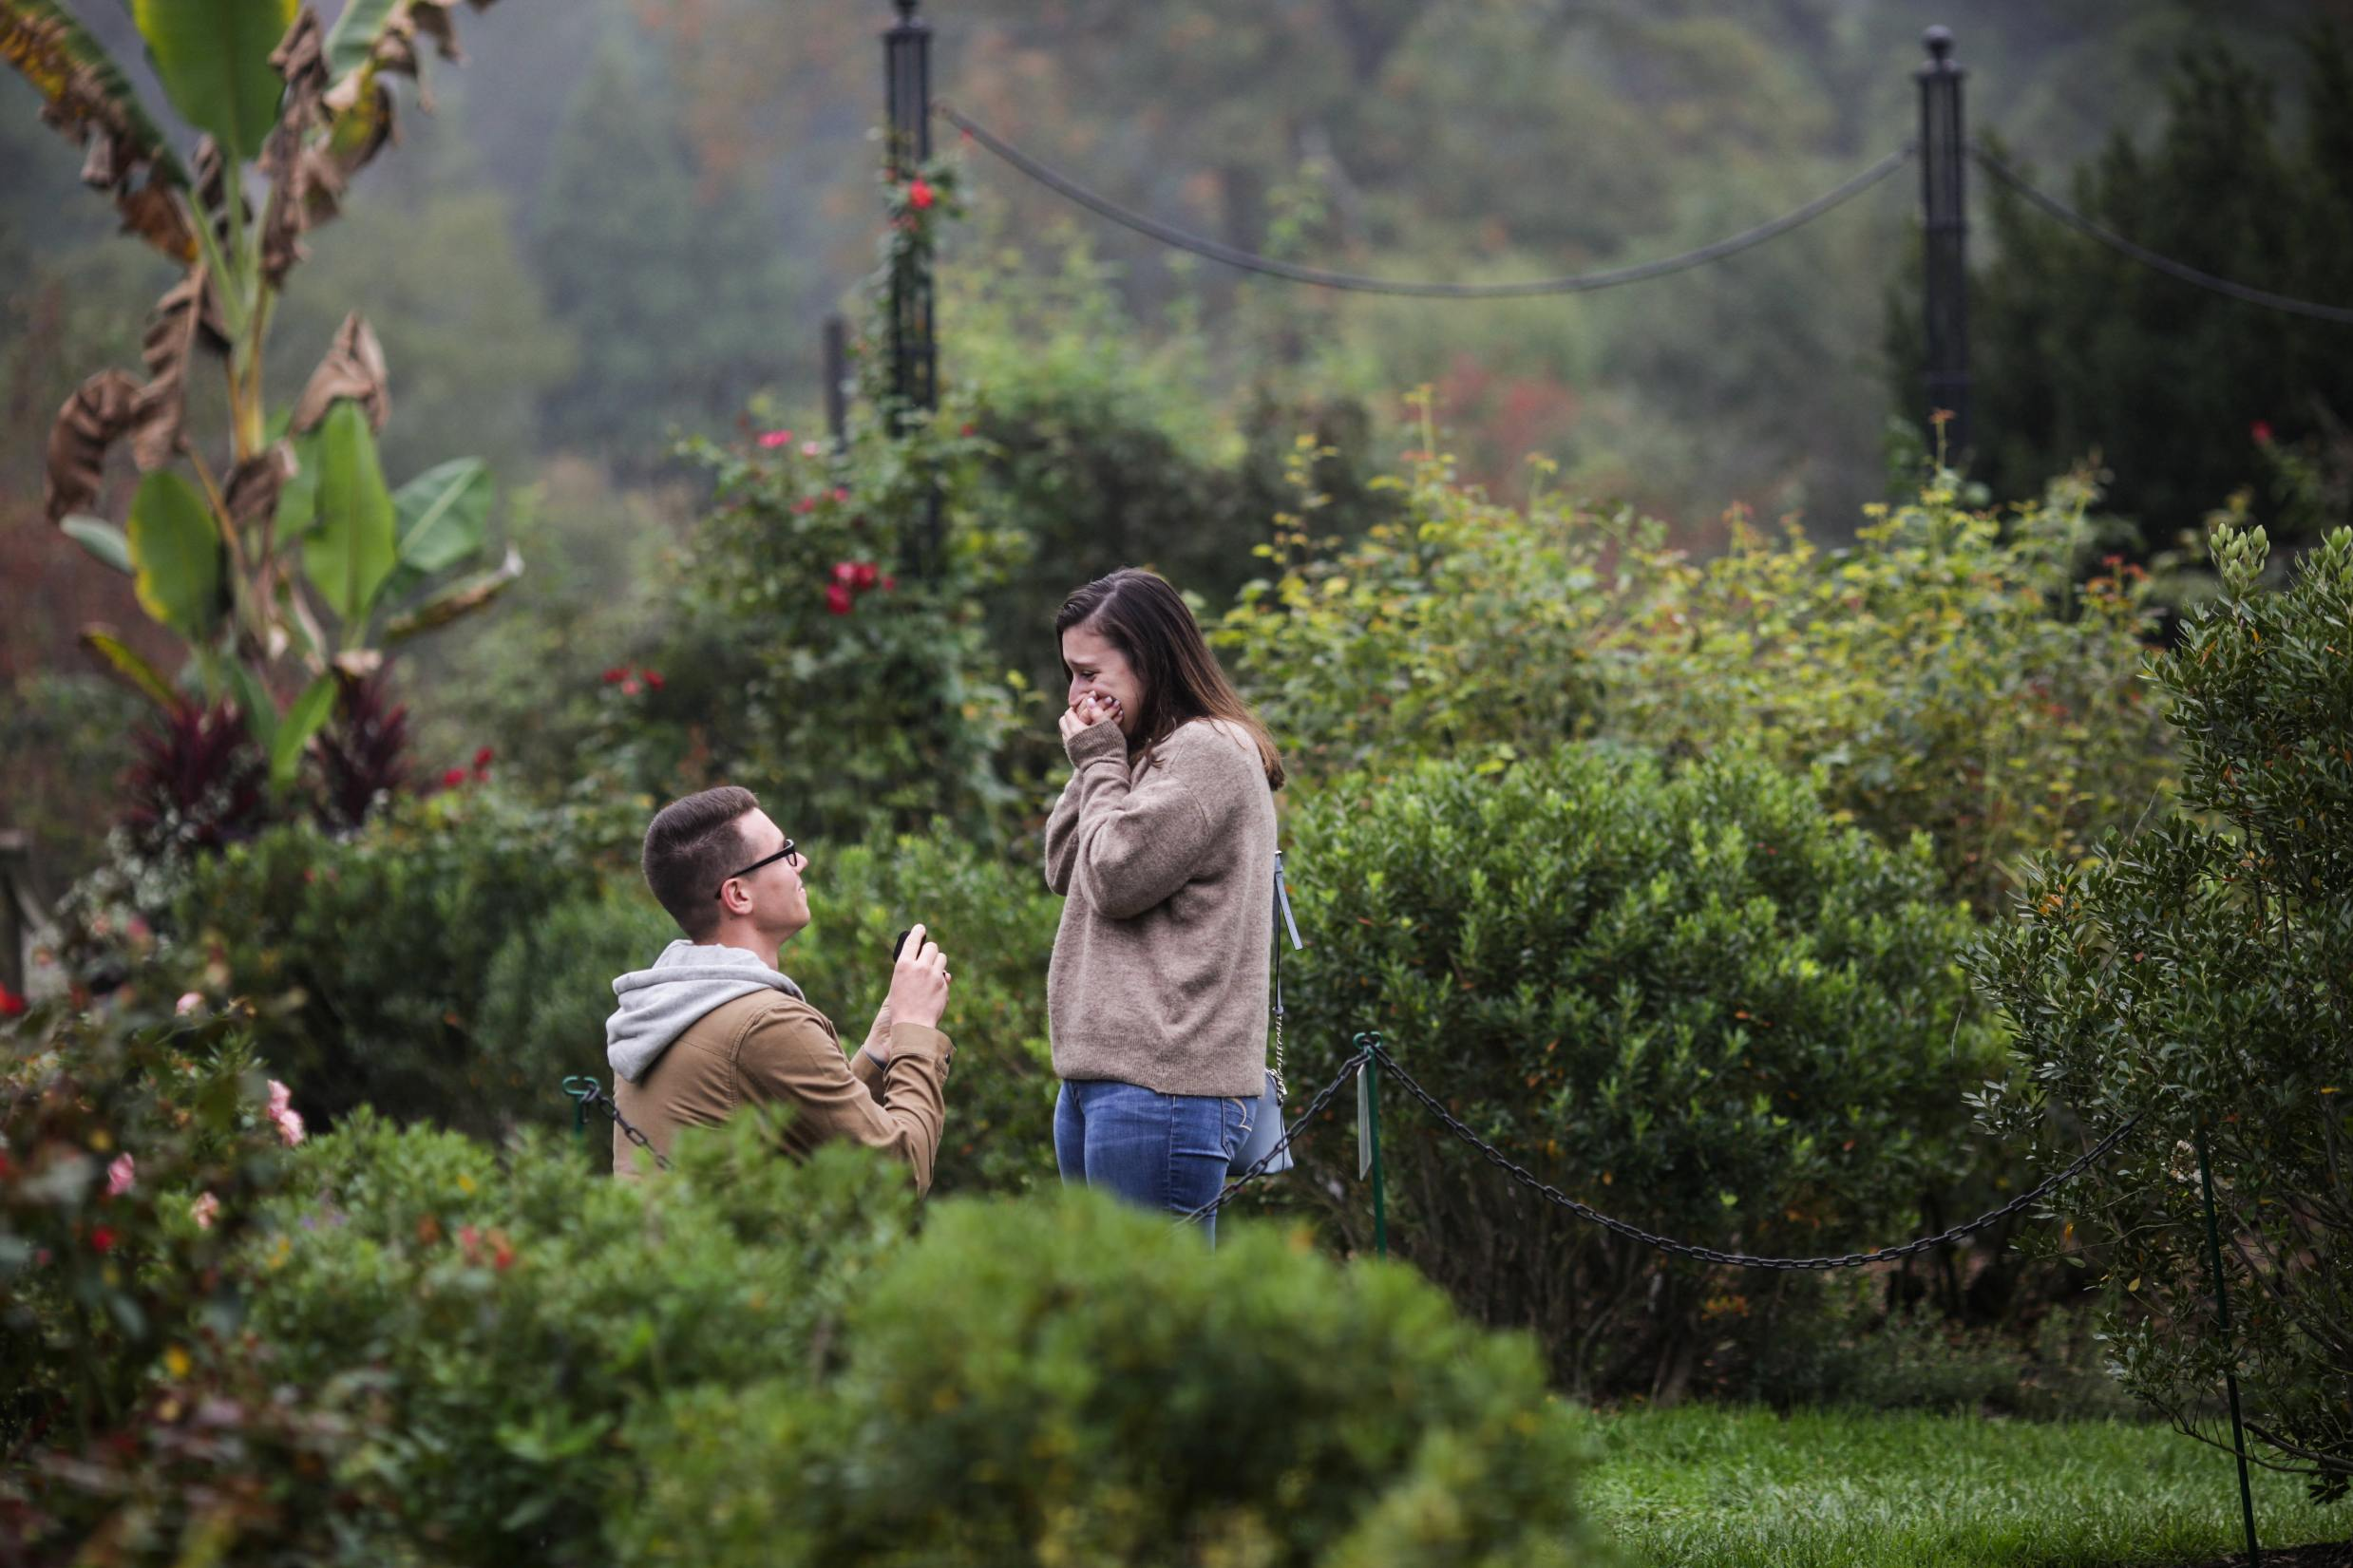 She said yes! -